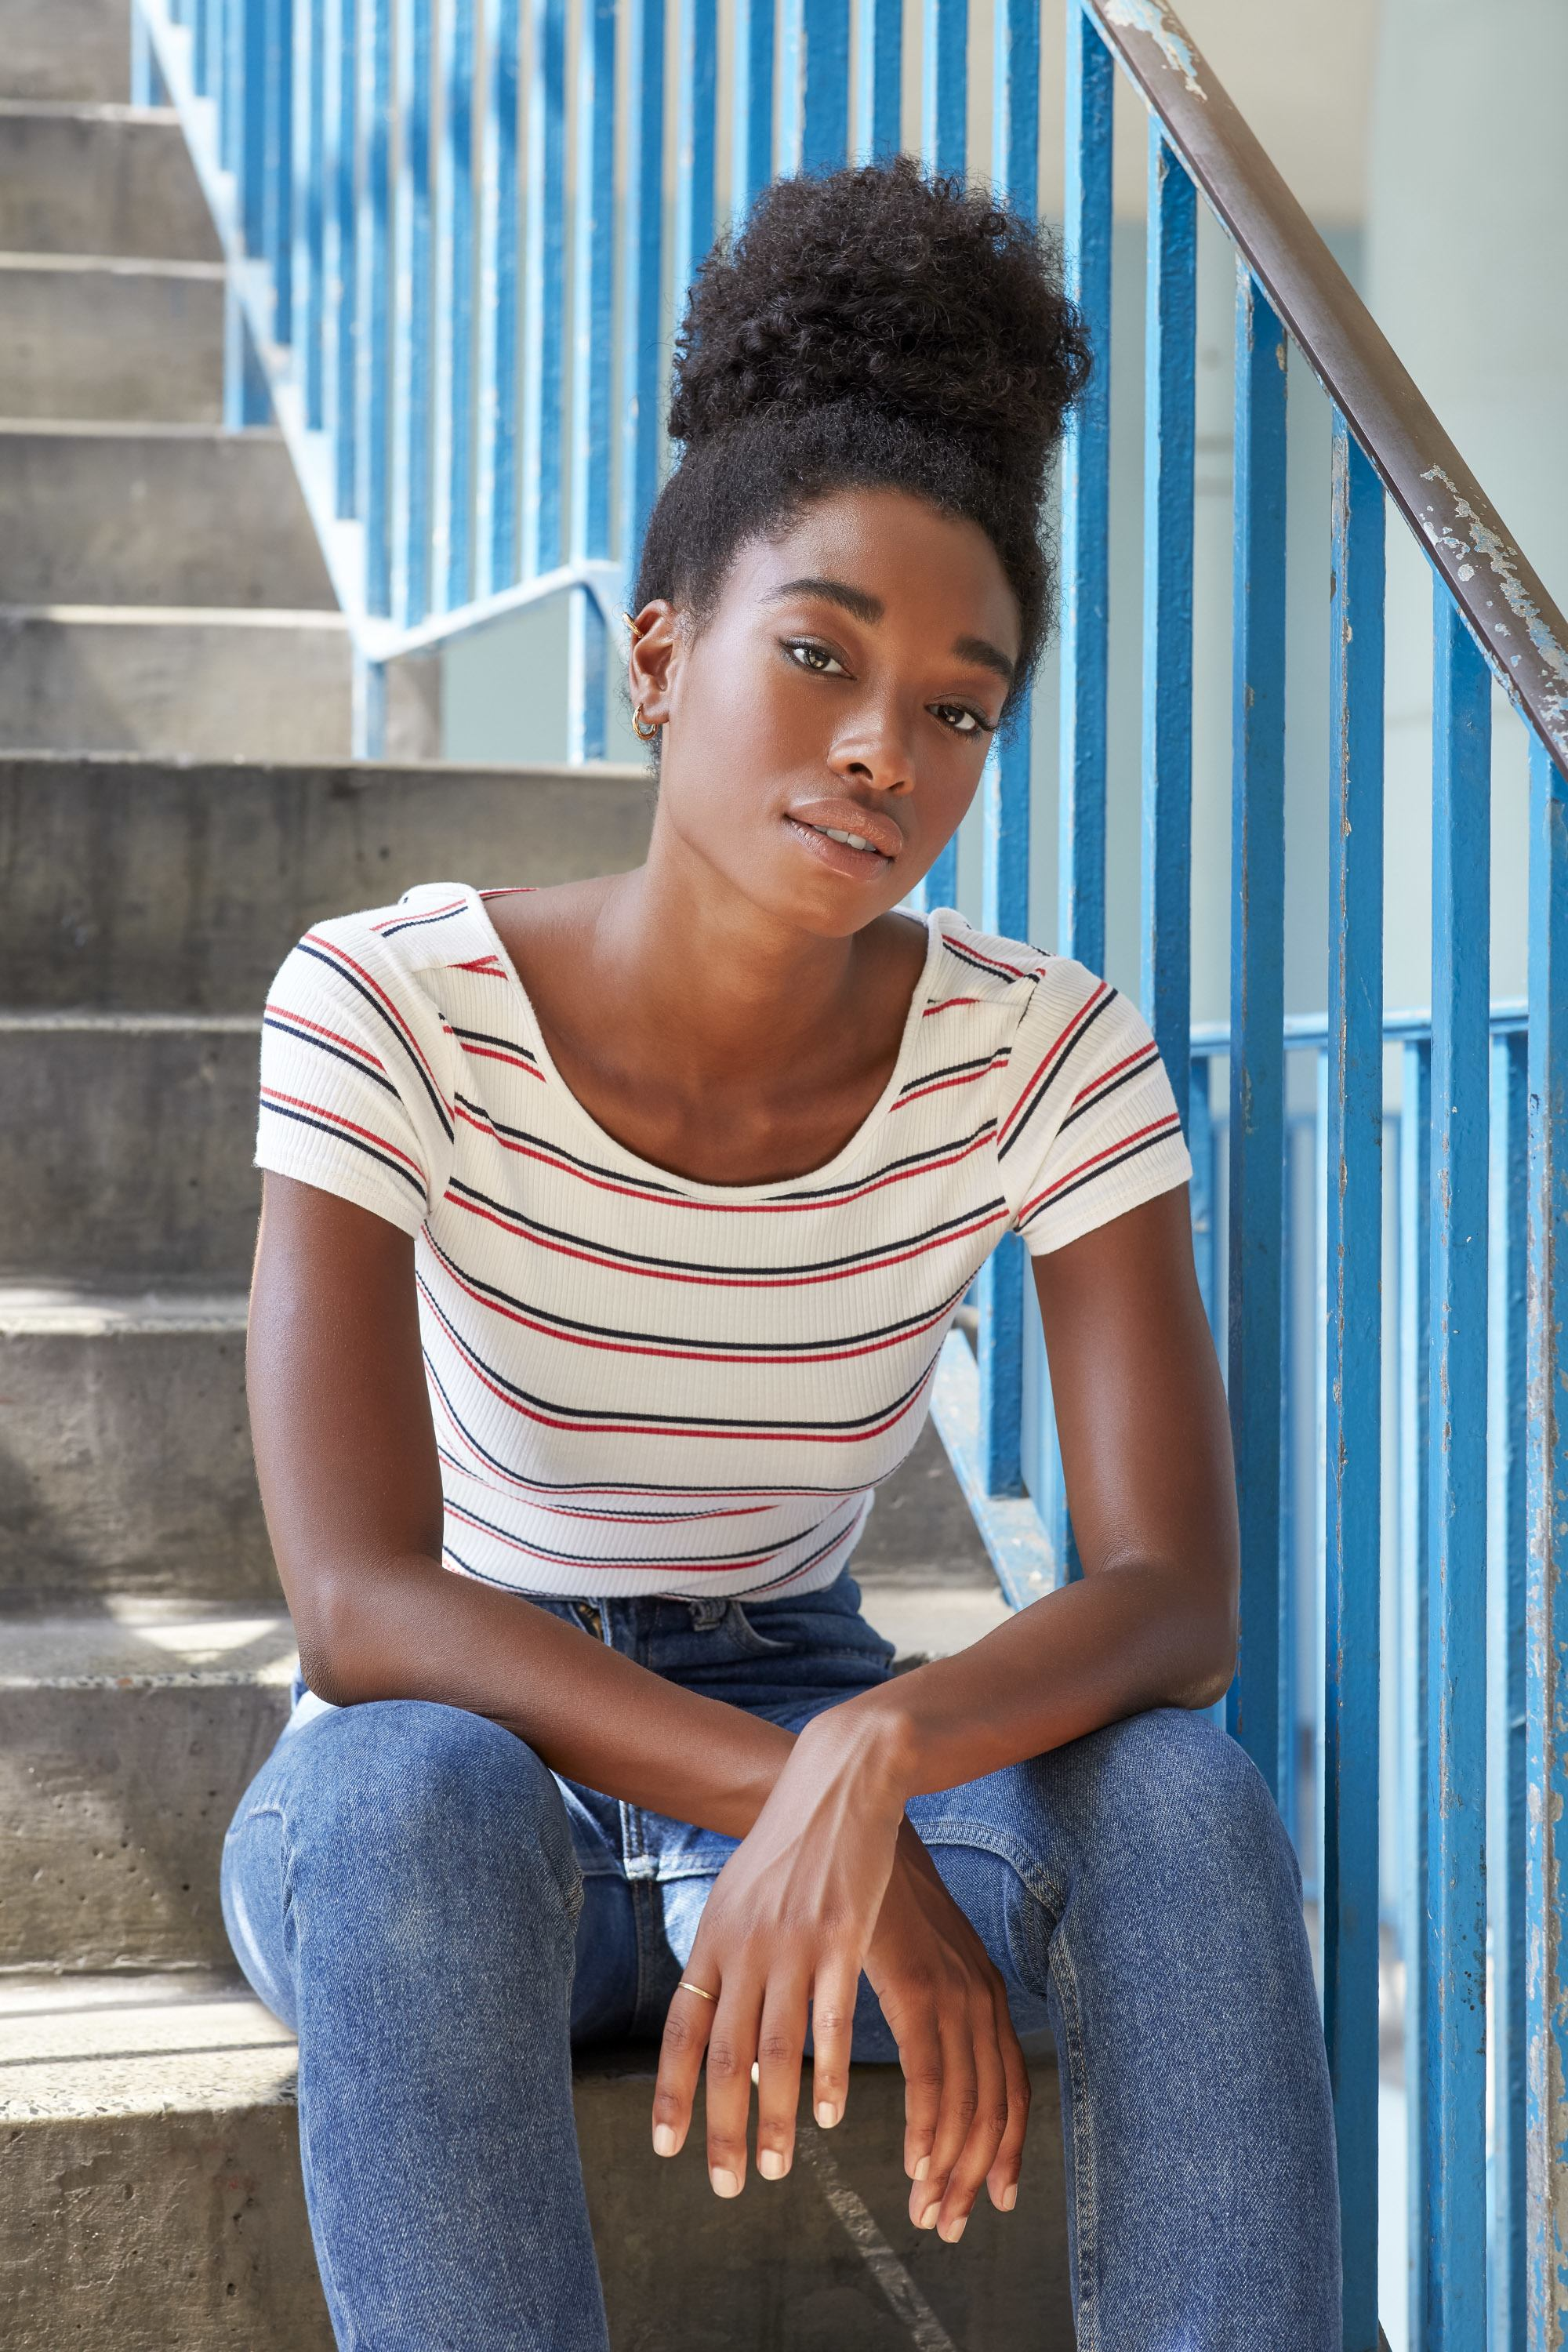 Low manipulation hairstyles: Young black woman with a high bun pineapple hairstyle sitting on stairs, wearing blue jeans and a white and red striped t-shirt